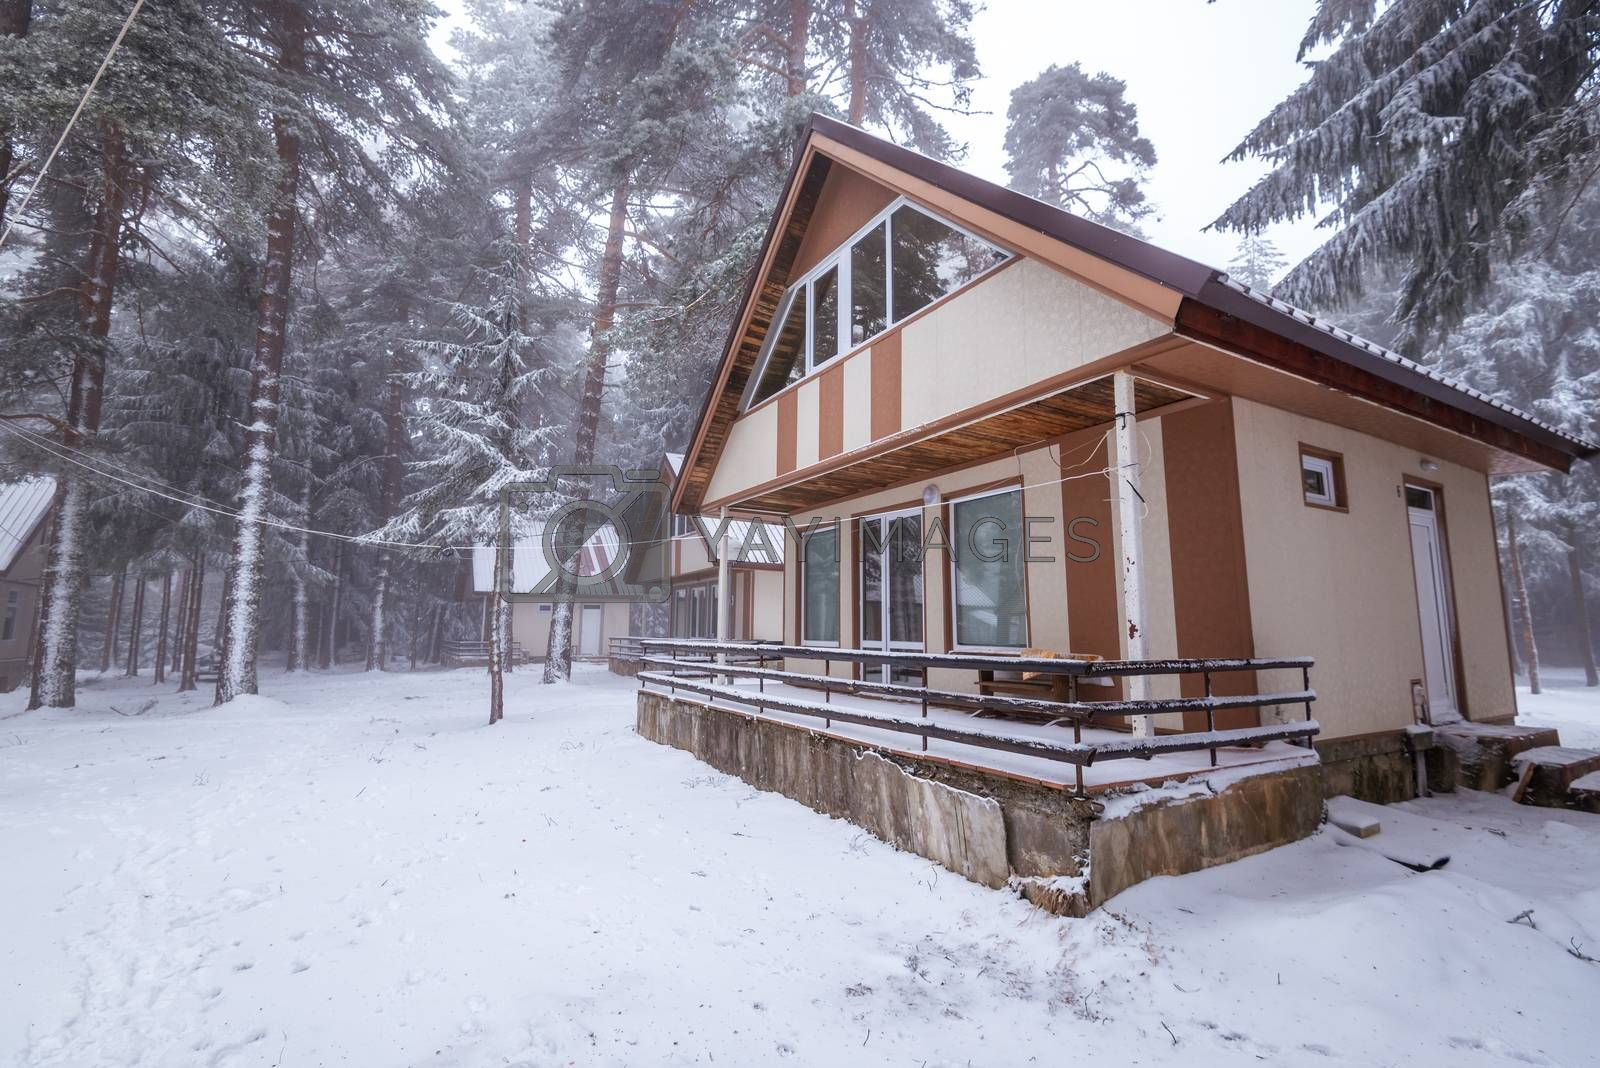 Little house in Bulgaria at winter.